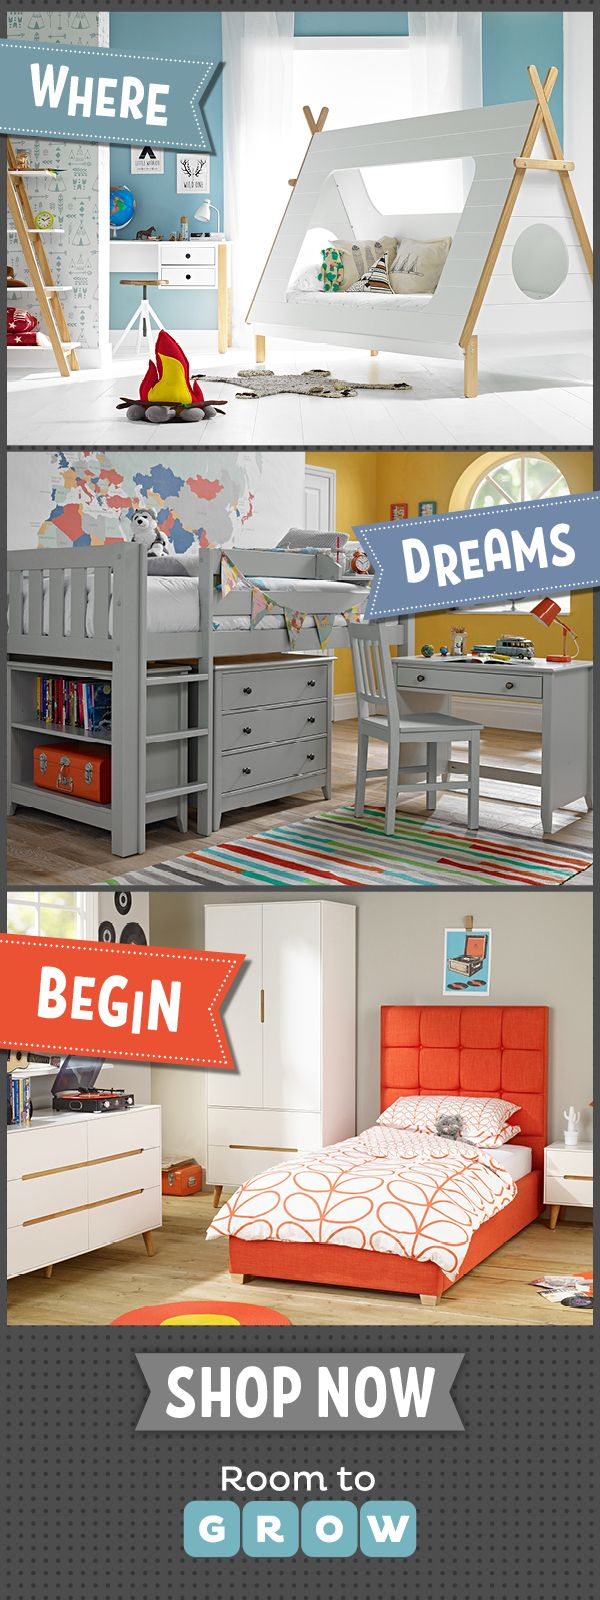 Design Your Own Bedroom Online For Free Fair From A Vast Choice We've Handpicked The Very Best Children's Beds Inspiration